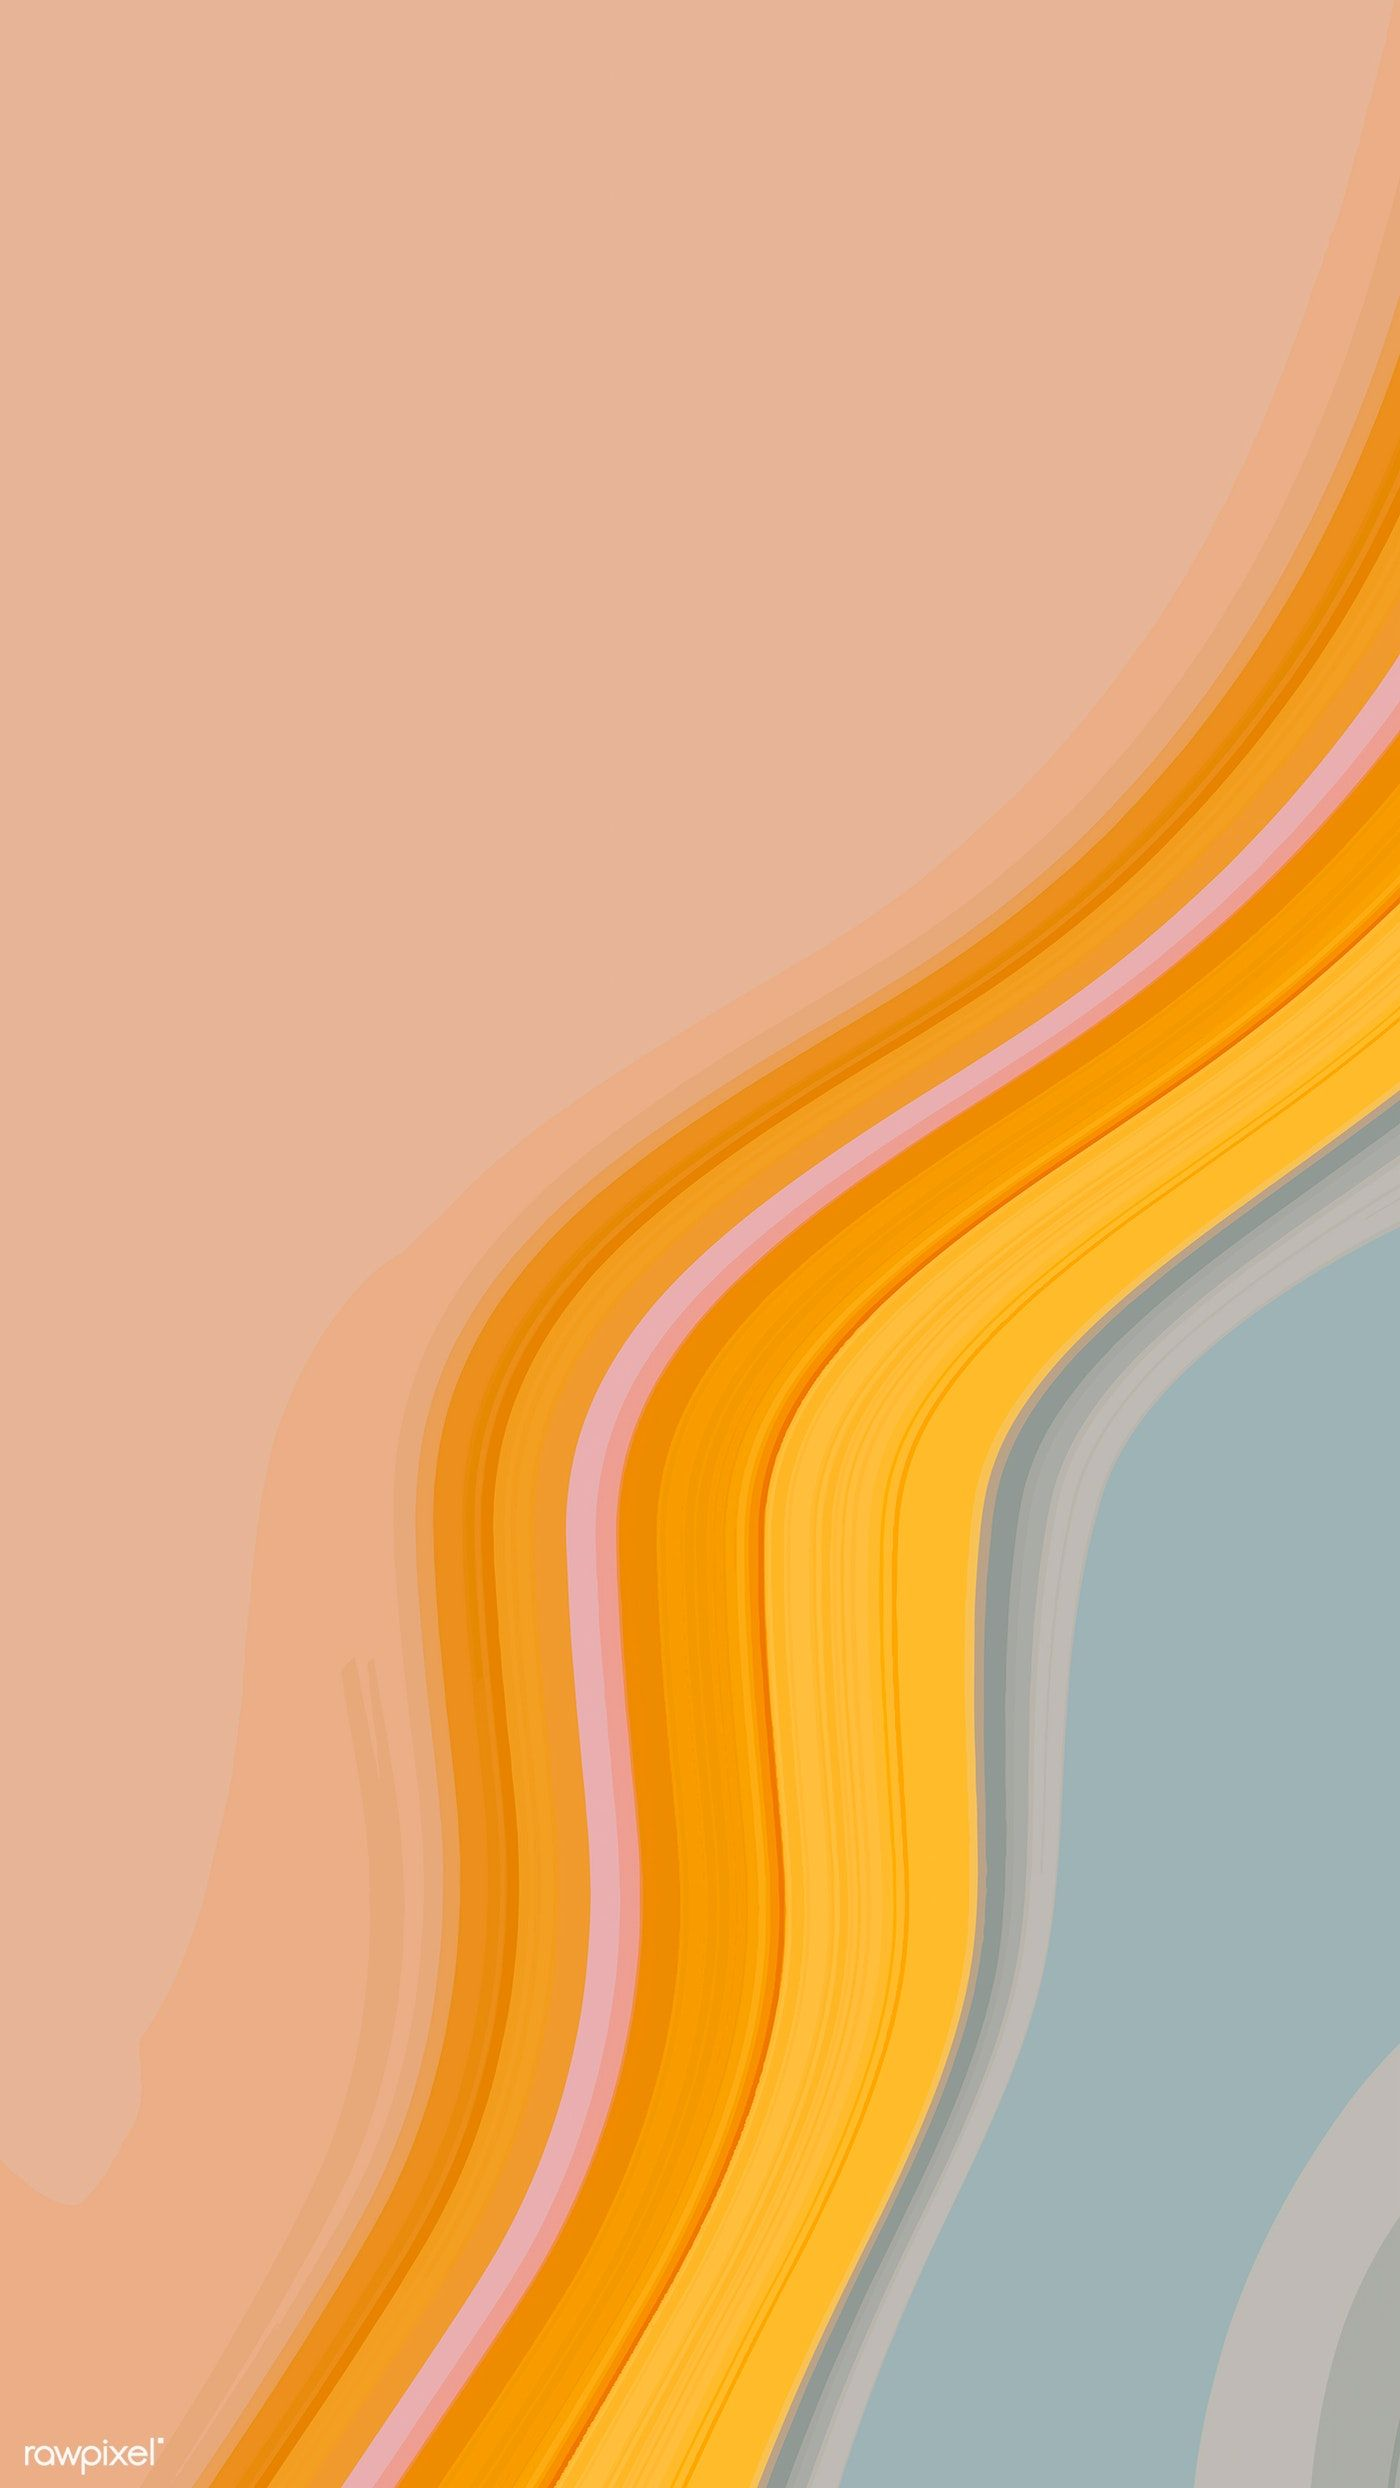 Download premium vector of Orange and blue fluid patterned mobile phone